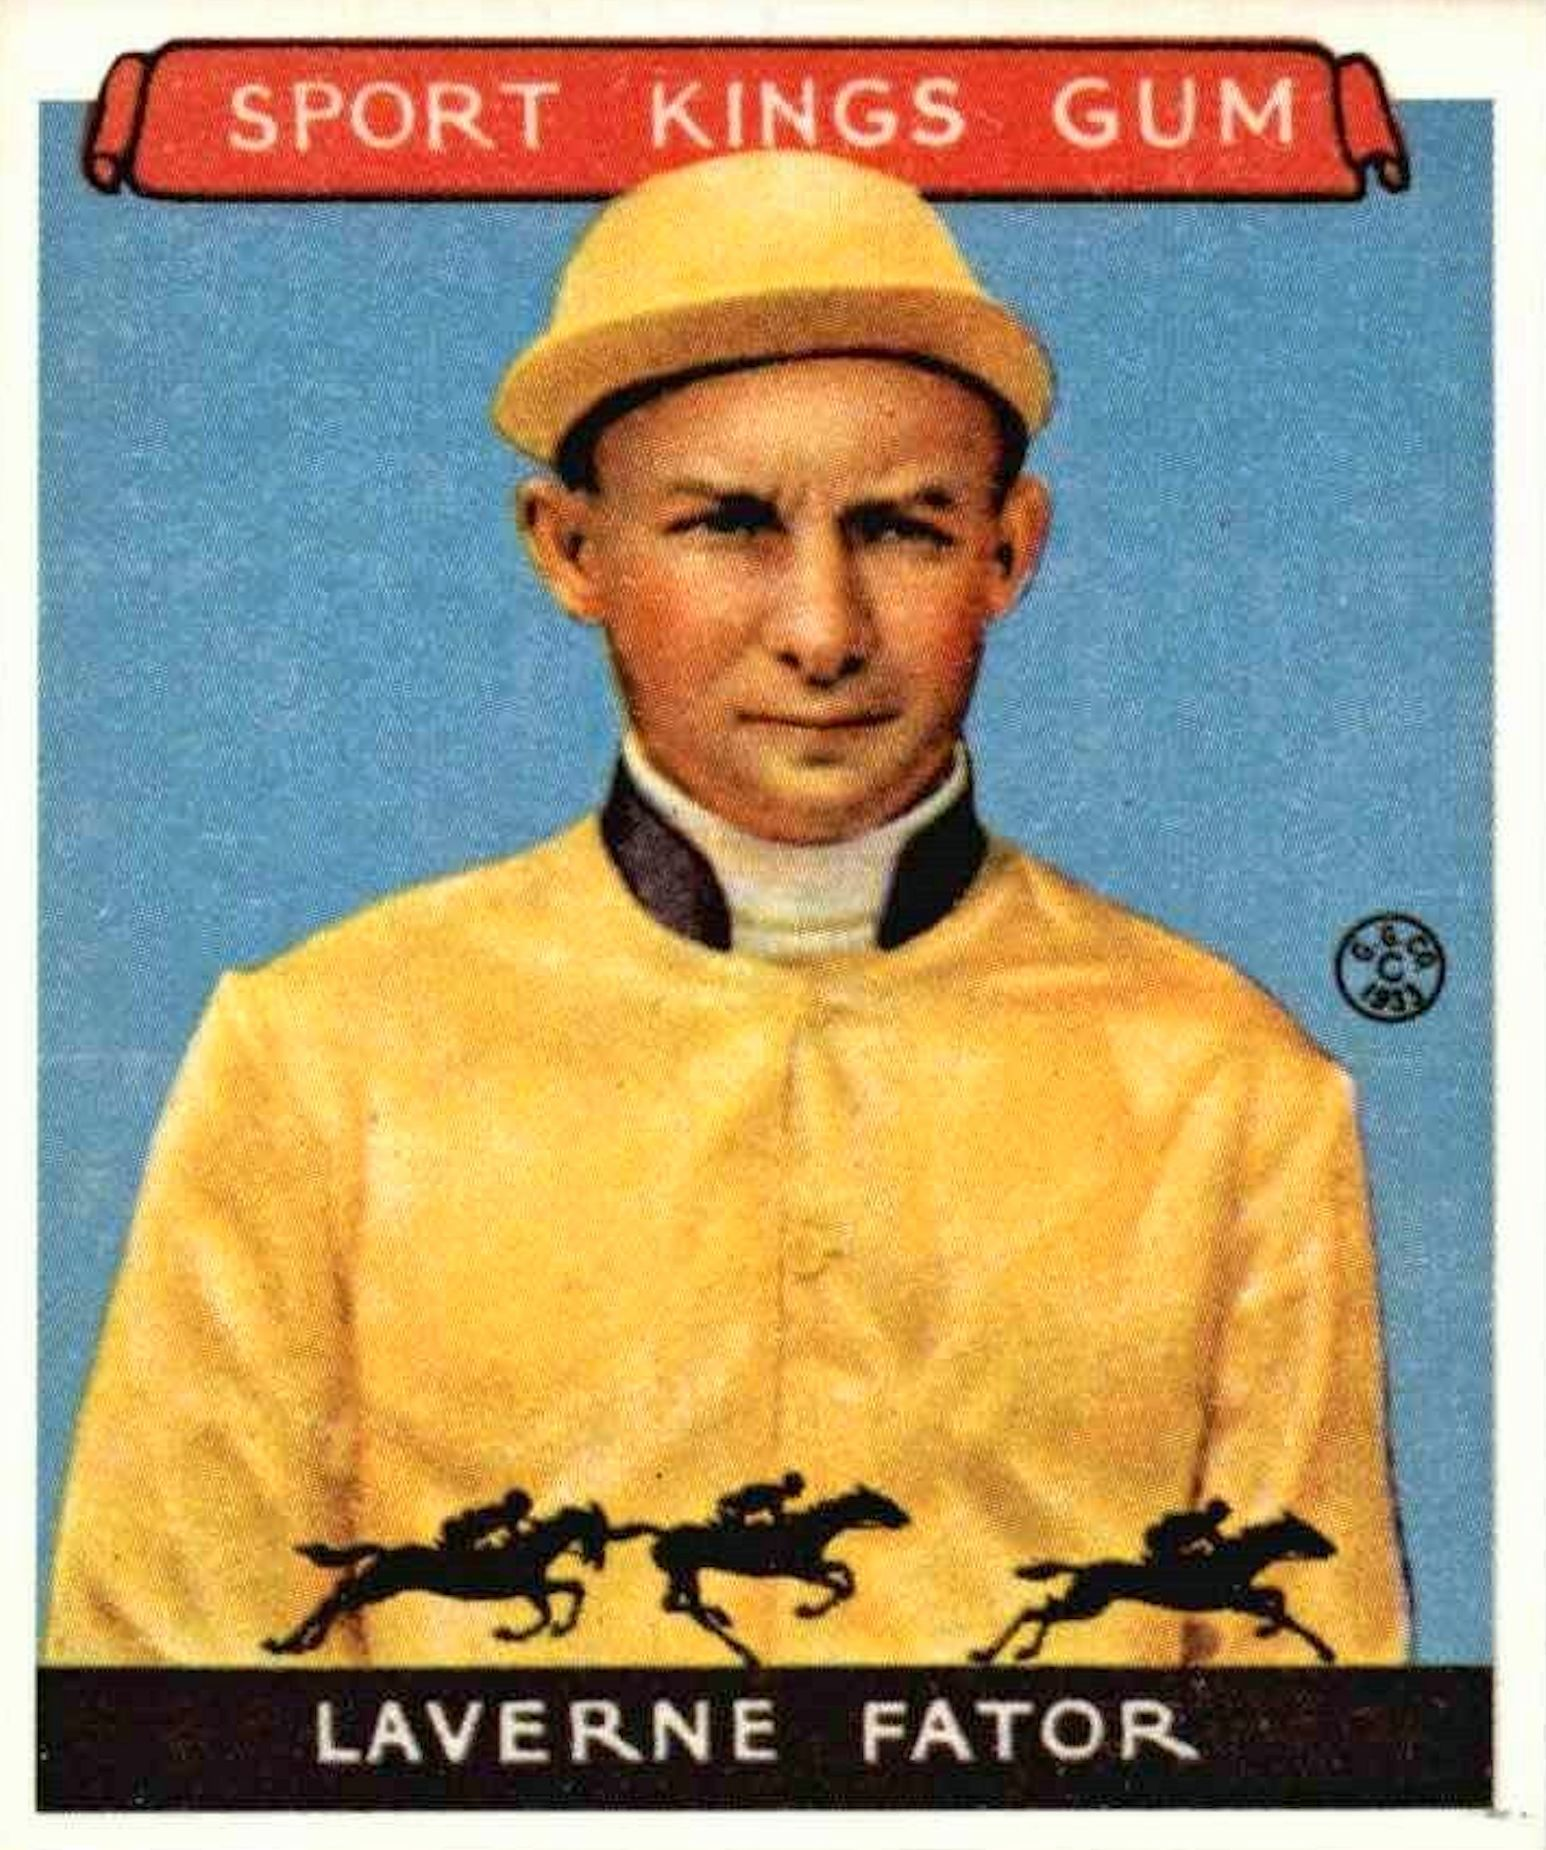 Laverne Fator, 1933 Sport Kings jockey card